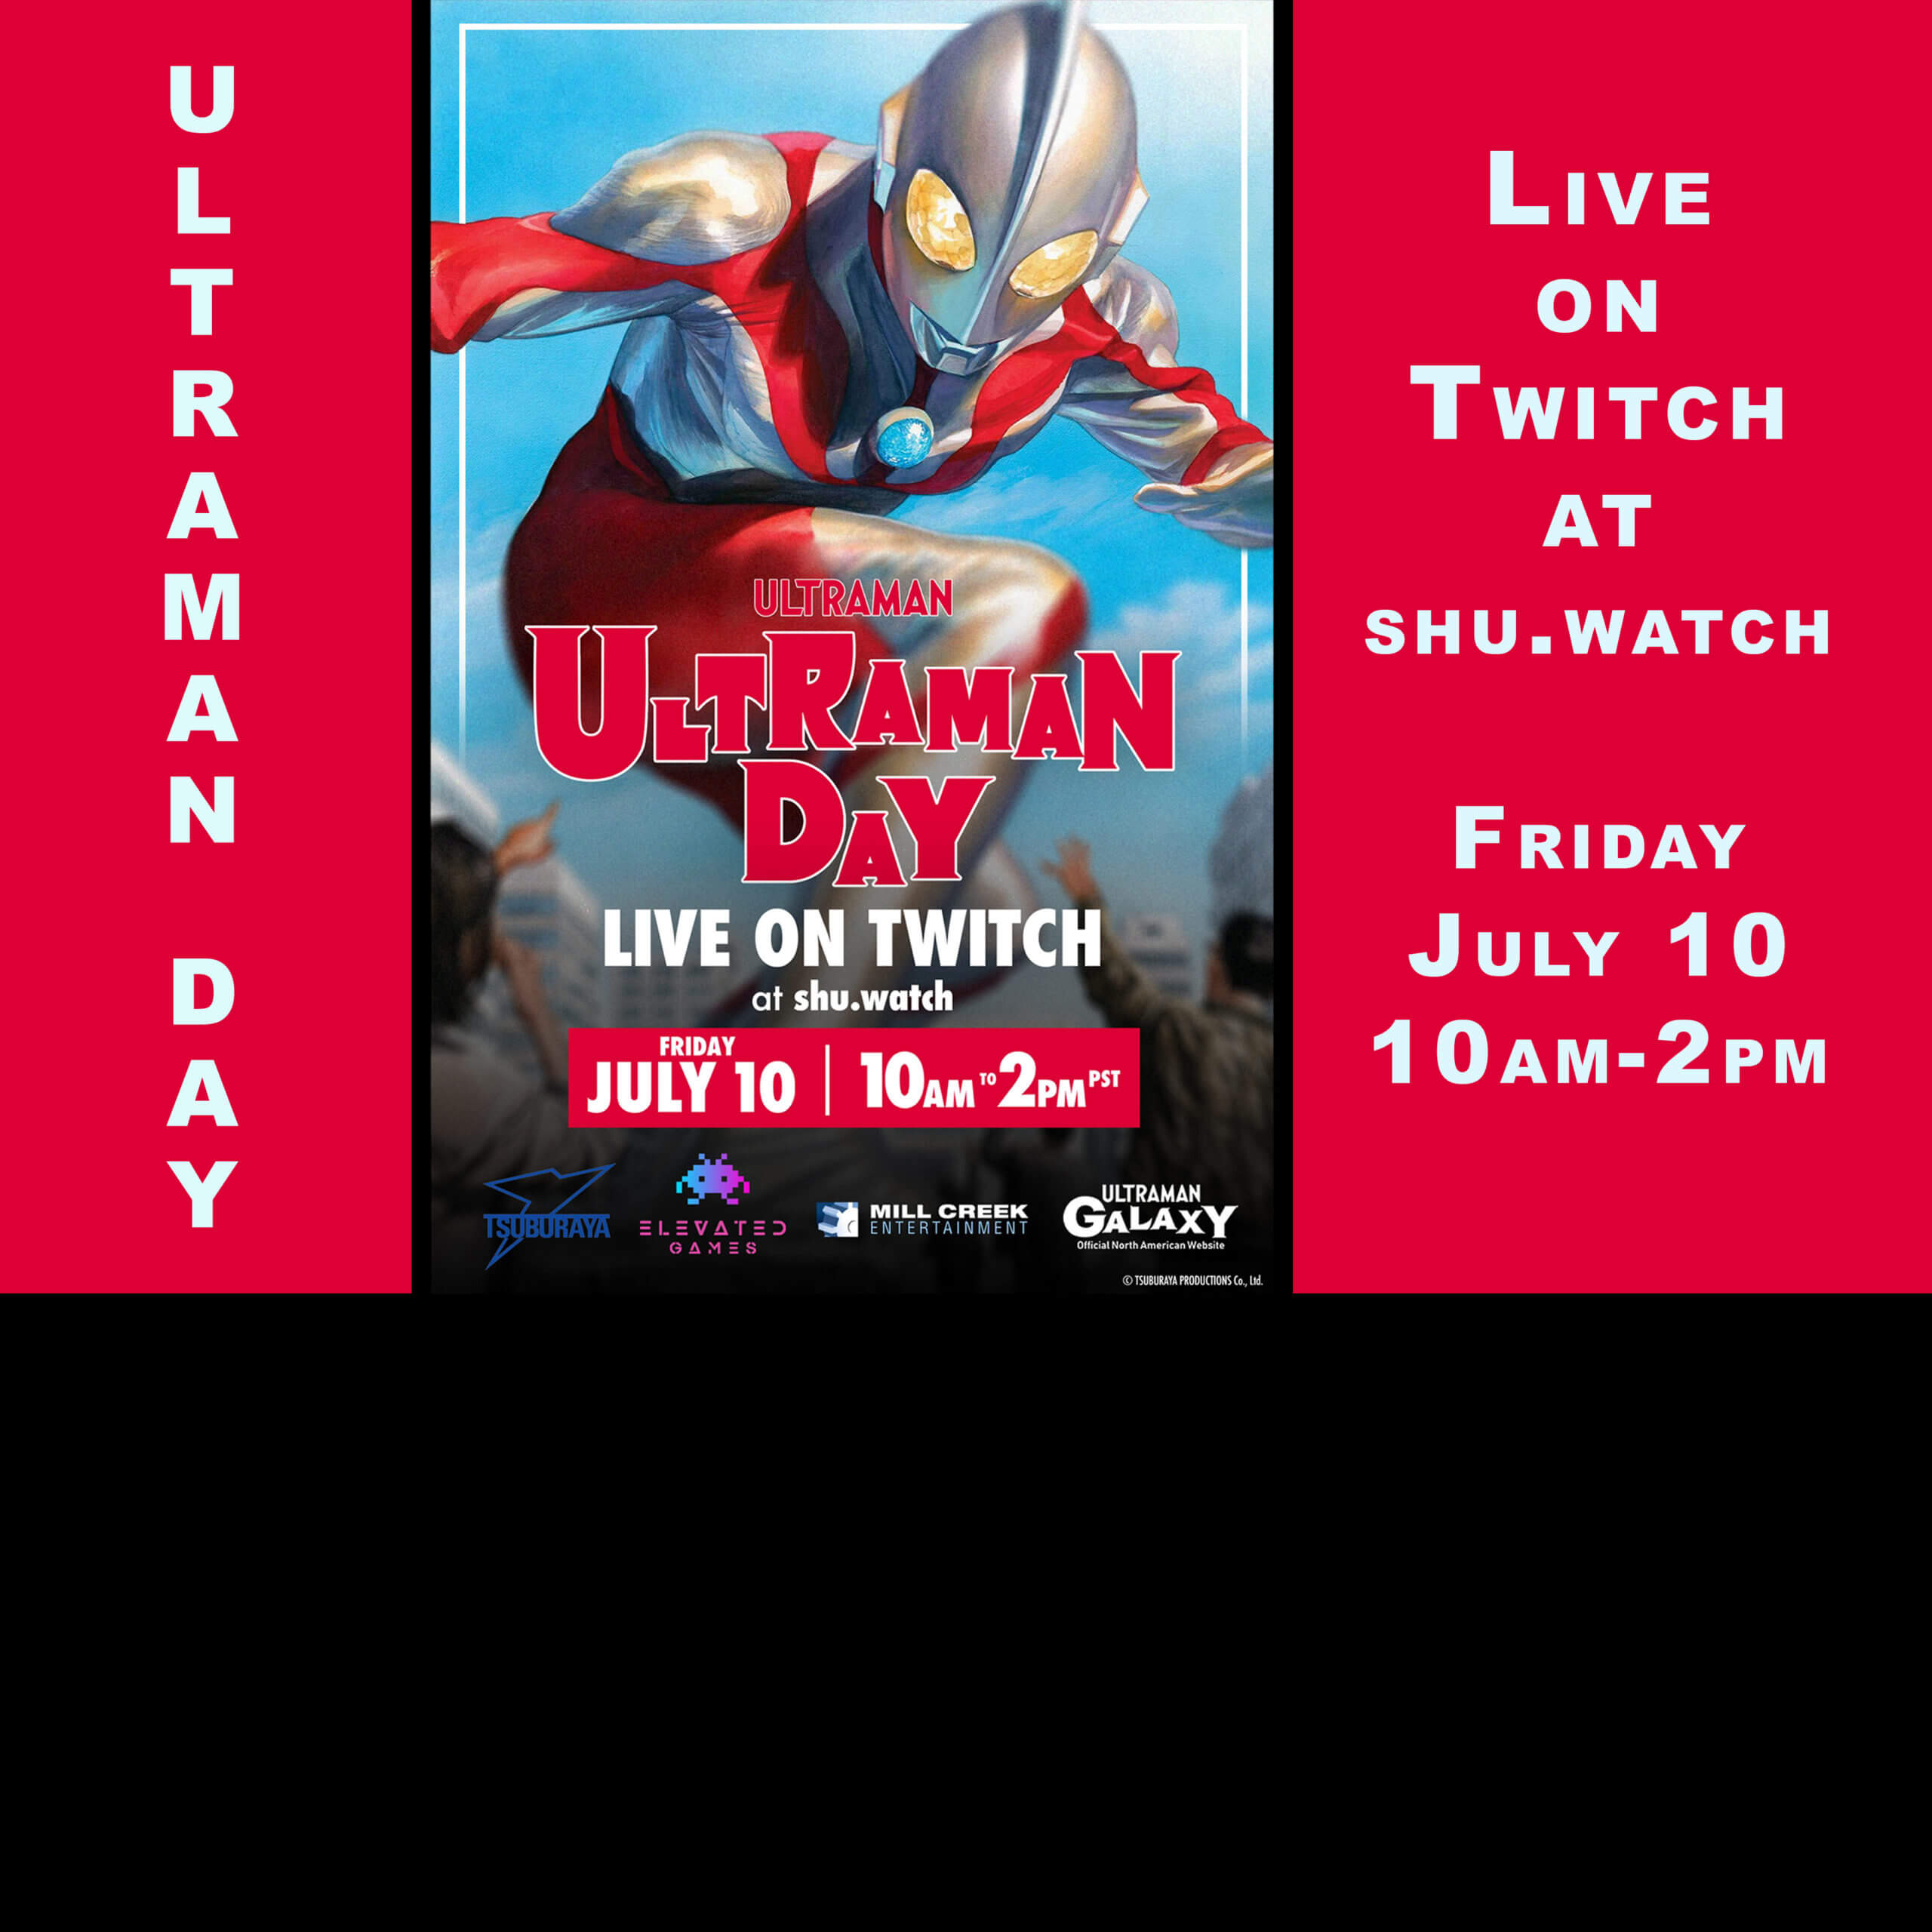 WHAT IS ULTRAMAN DAY?